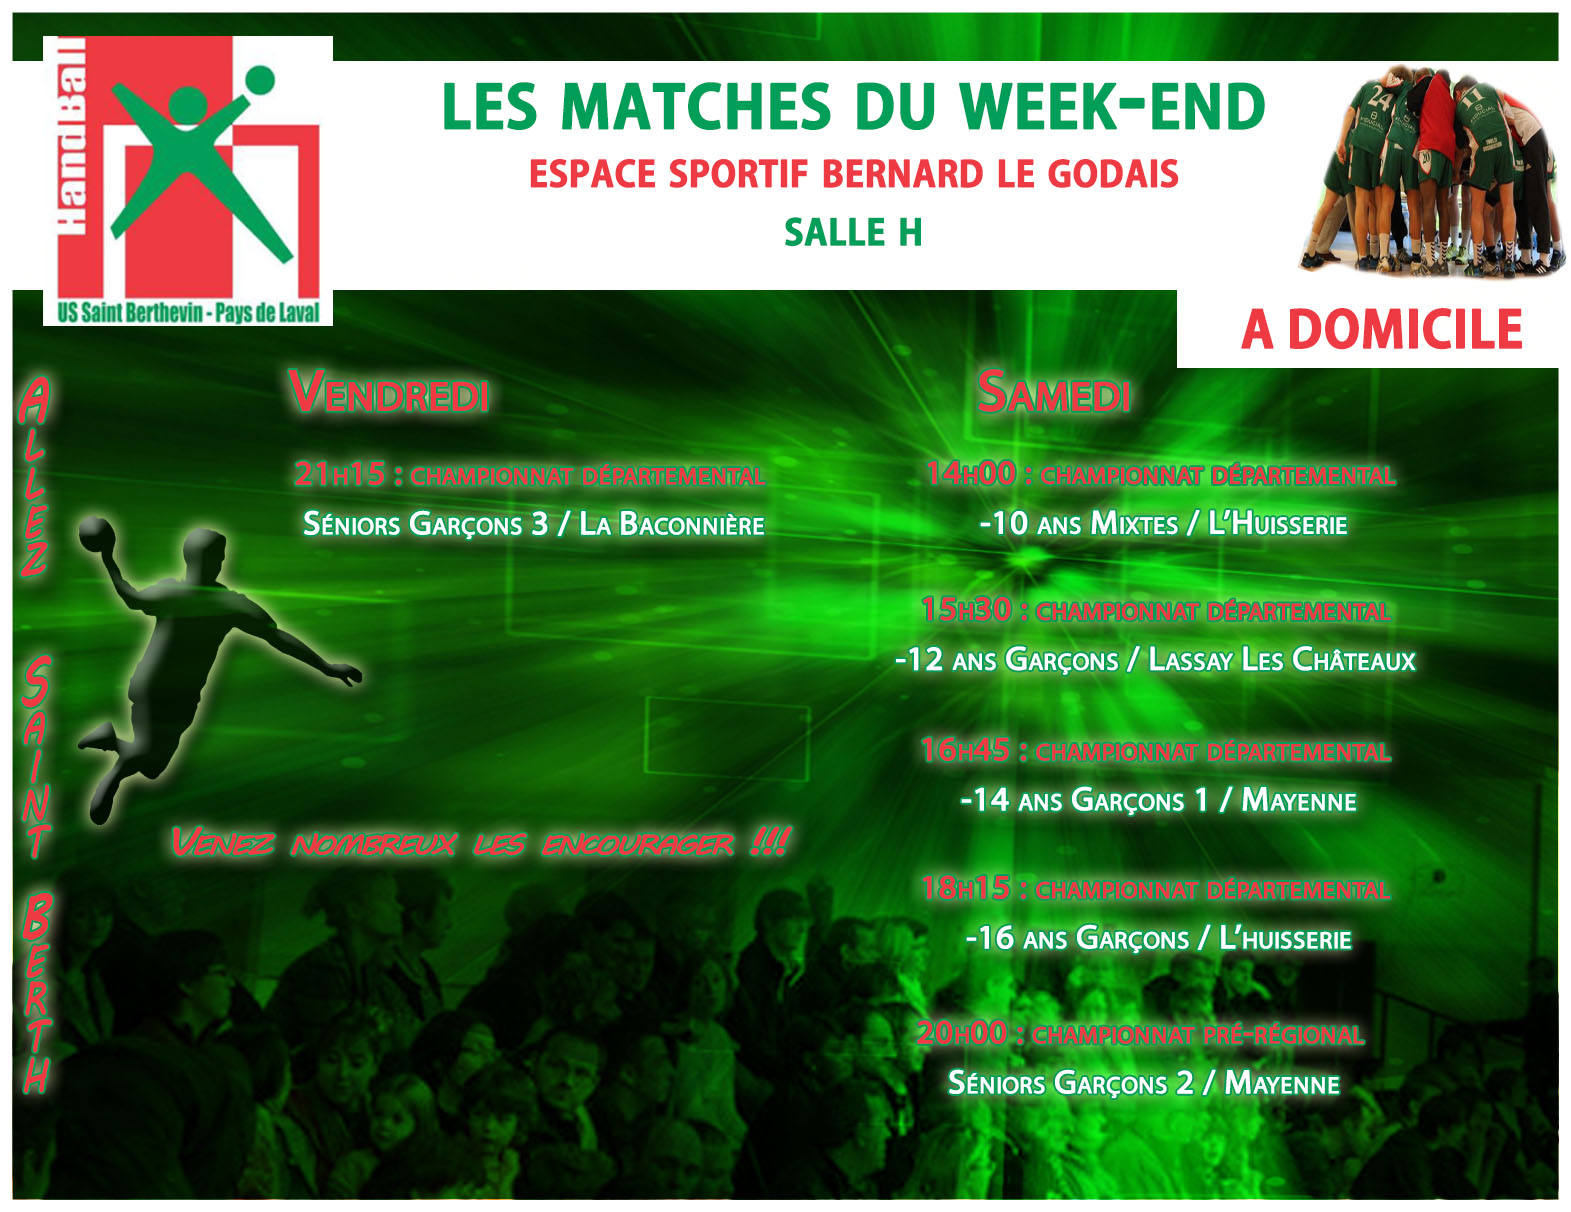 LE PROGRAMME DU WEEKEND DU 04/02/2017 A DOMICILE